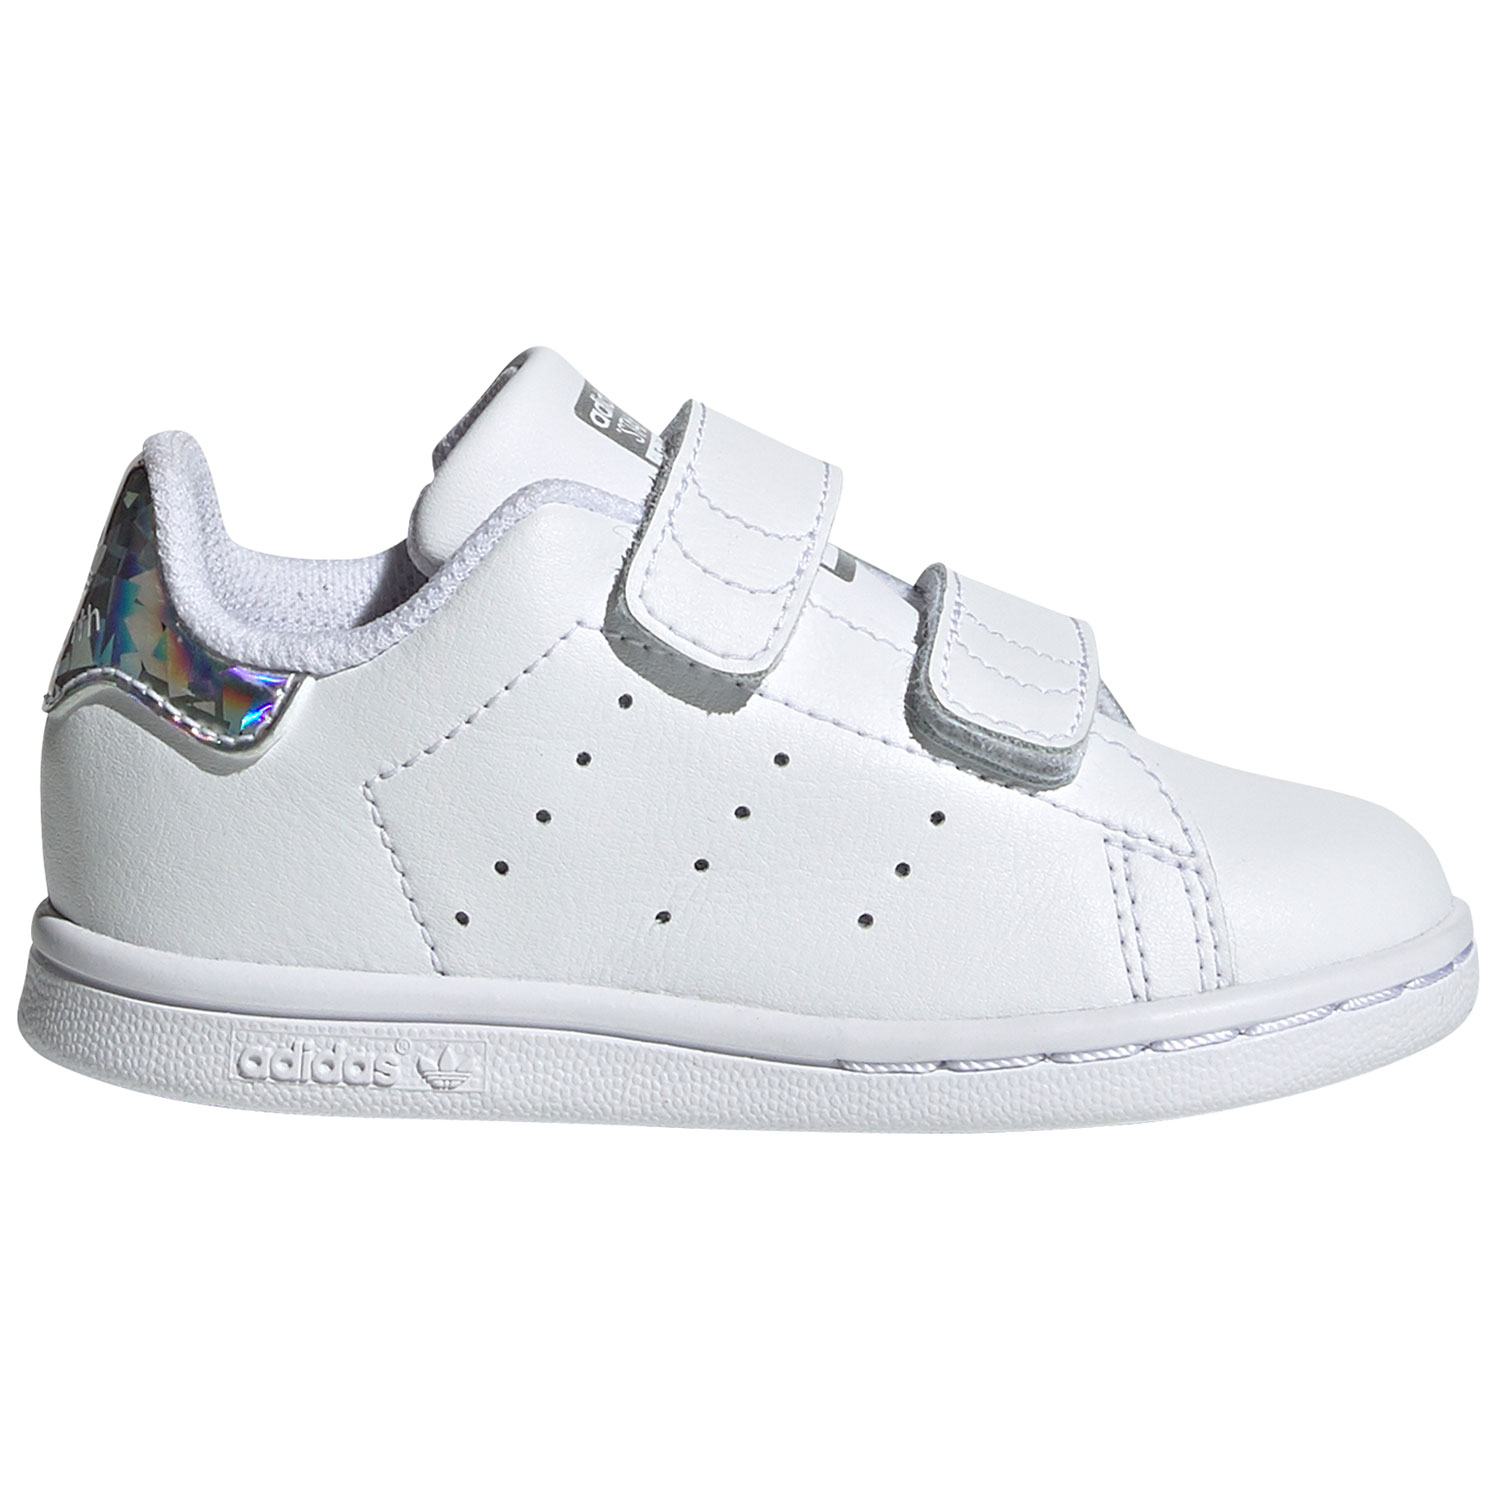 quality design 049ed 189bd adidas Originals Stan Smith CF I Kinder Sneaker weiß metallic EE8485